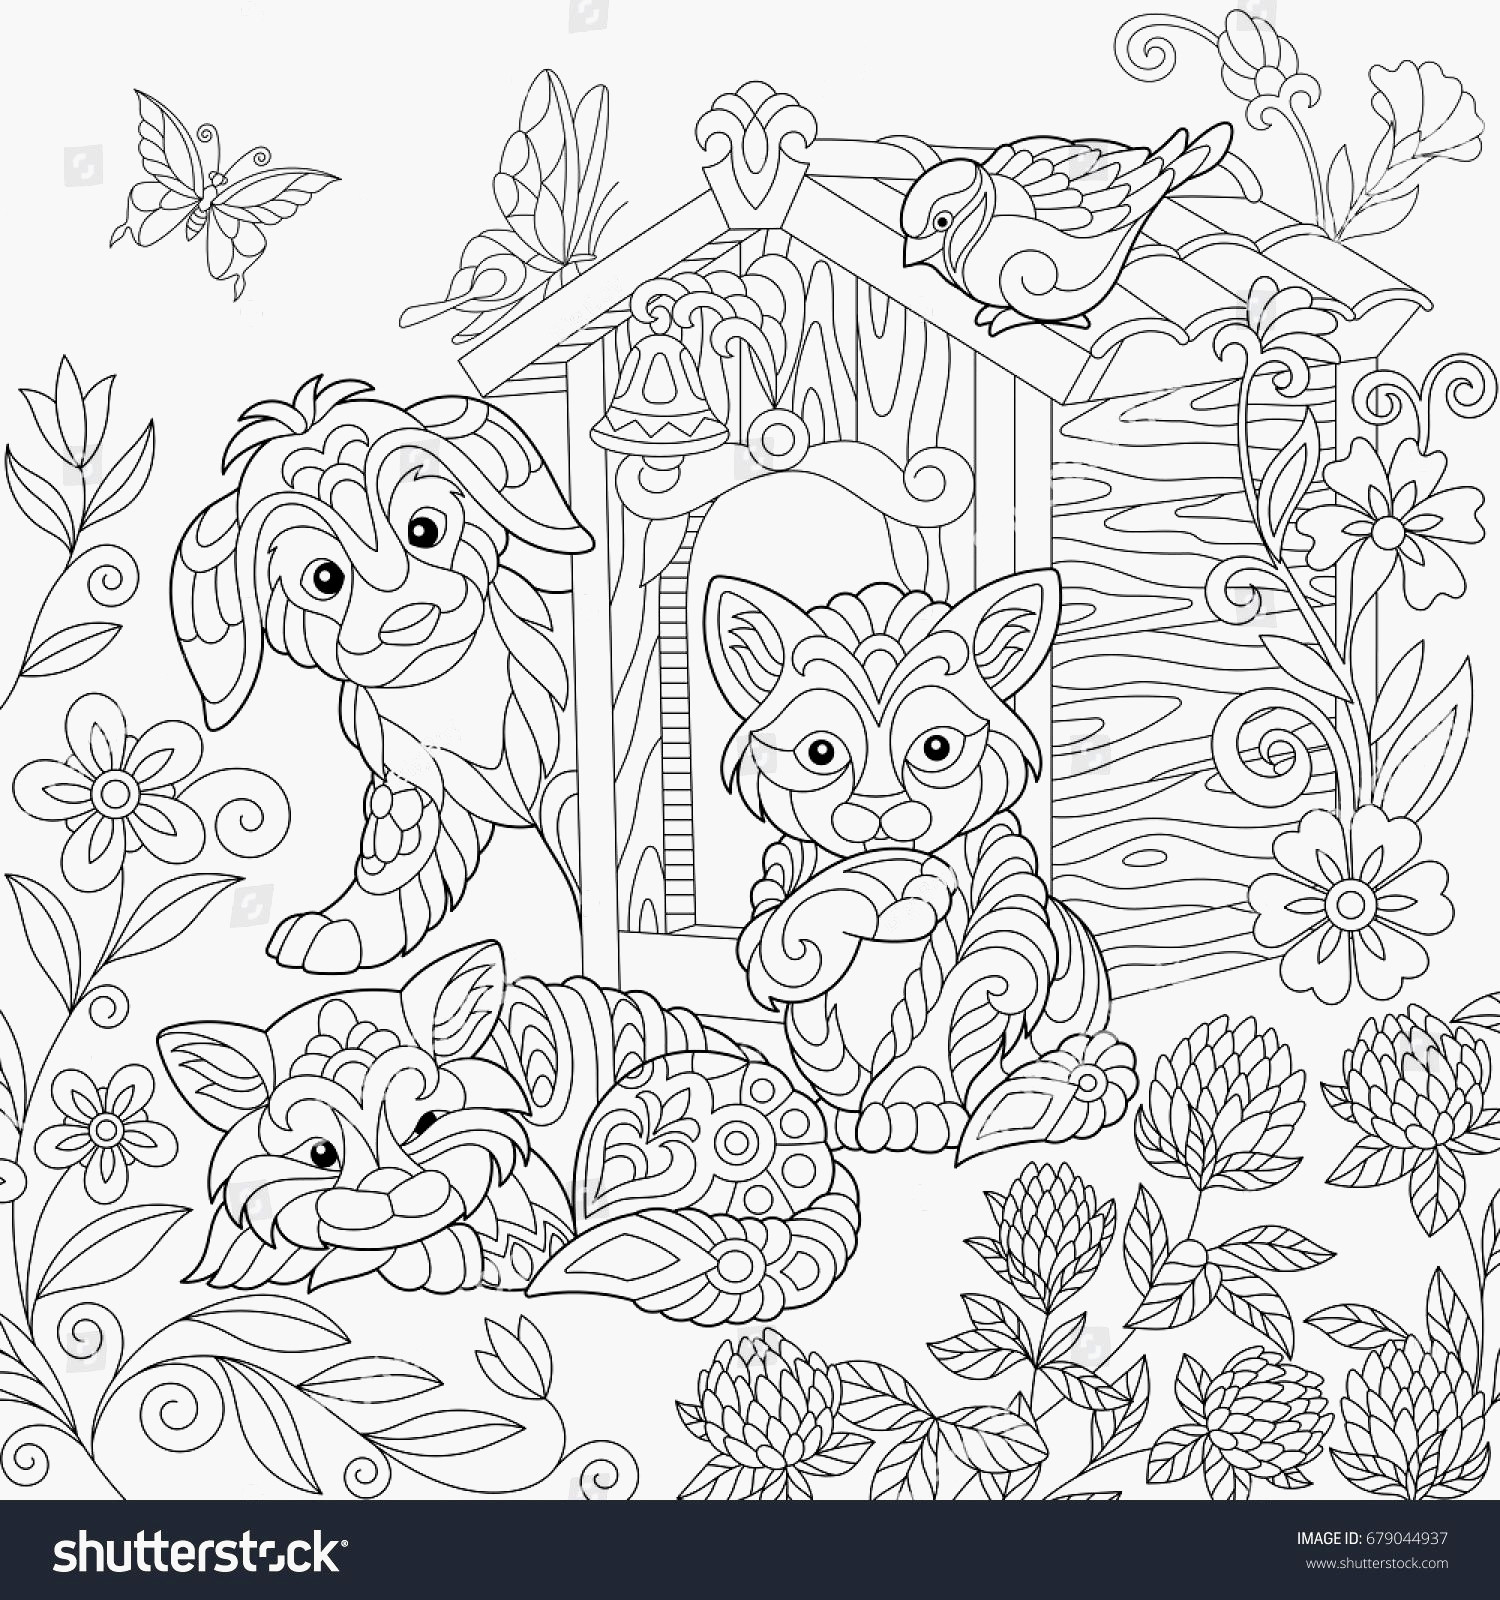 Shutterstock Coloring Pages  Download 11b - Free Download